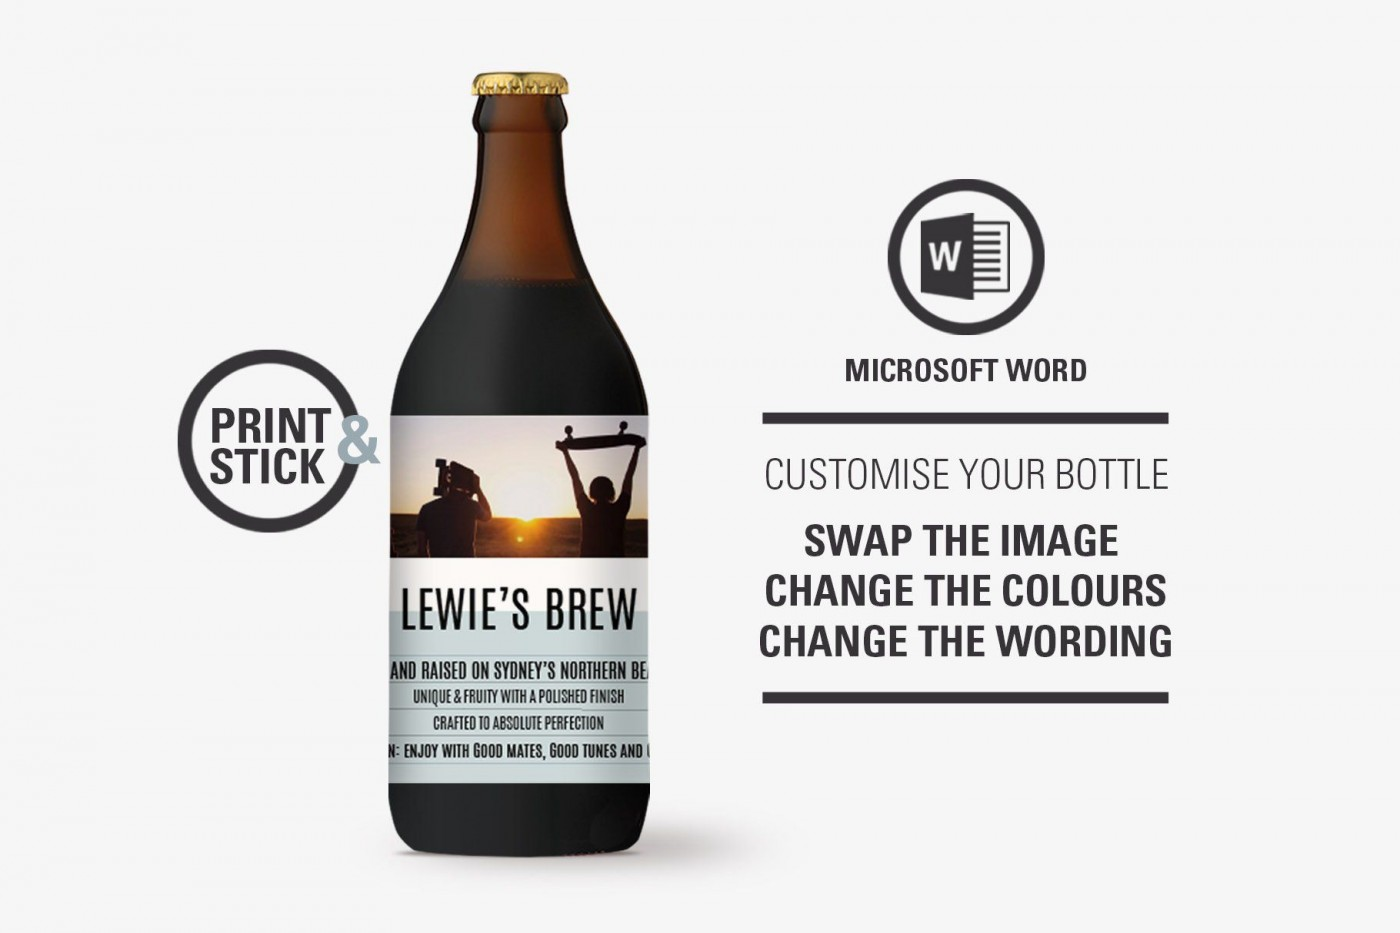 006 Stupendou Microsoft Word Beer Bottle Label Template Photo 1400